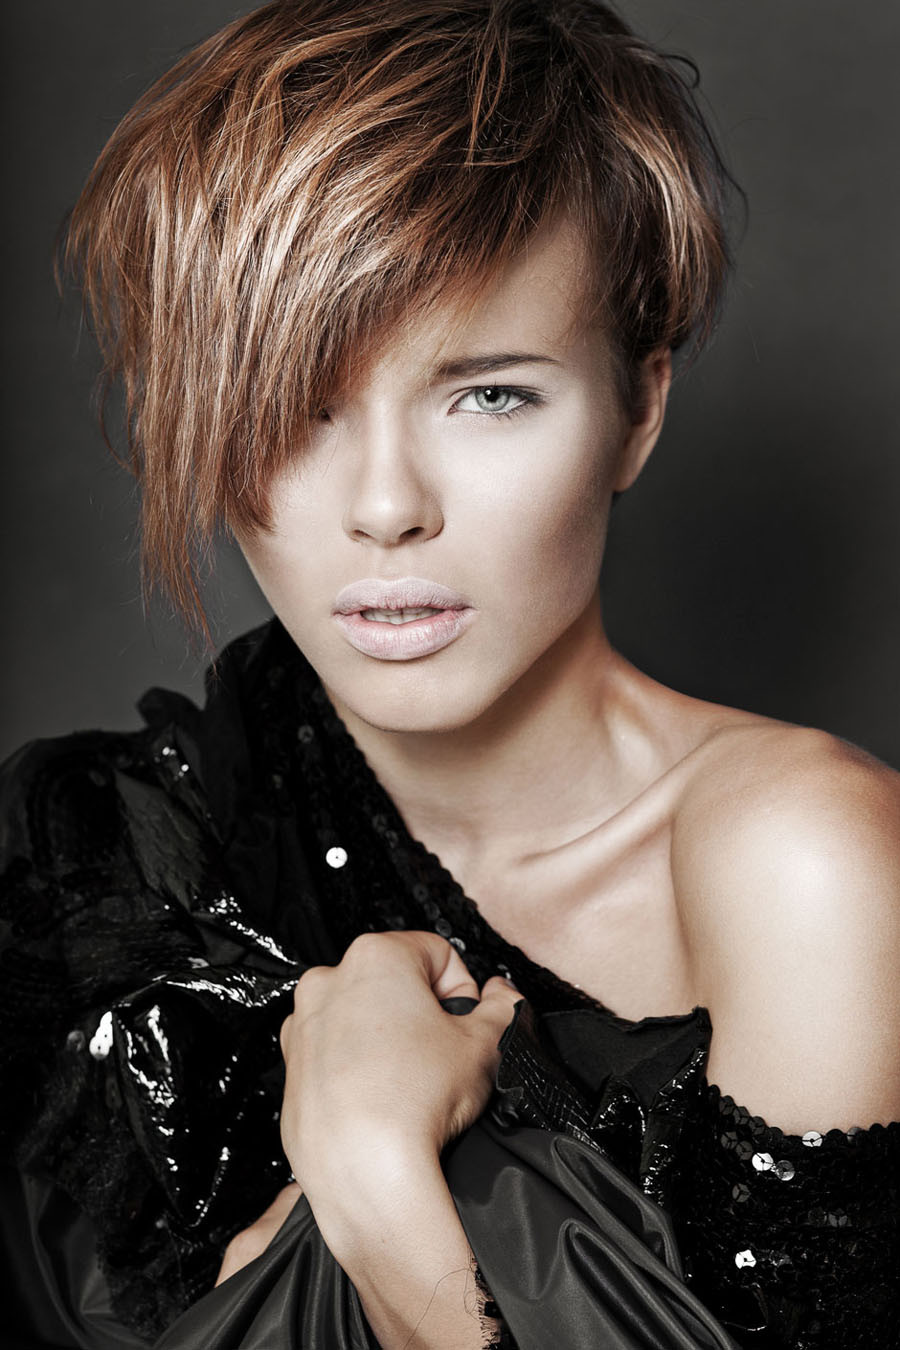 Best ideas about Boy Hairstyles For Girls . Save or Pin Women fashion la s fashion 2012 Women Fashion Boy Now.